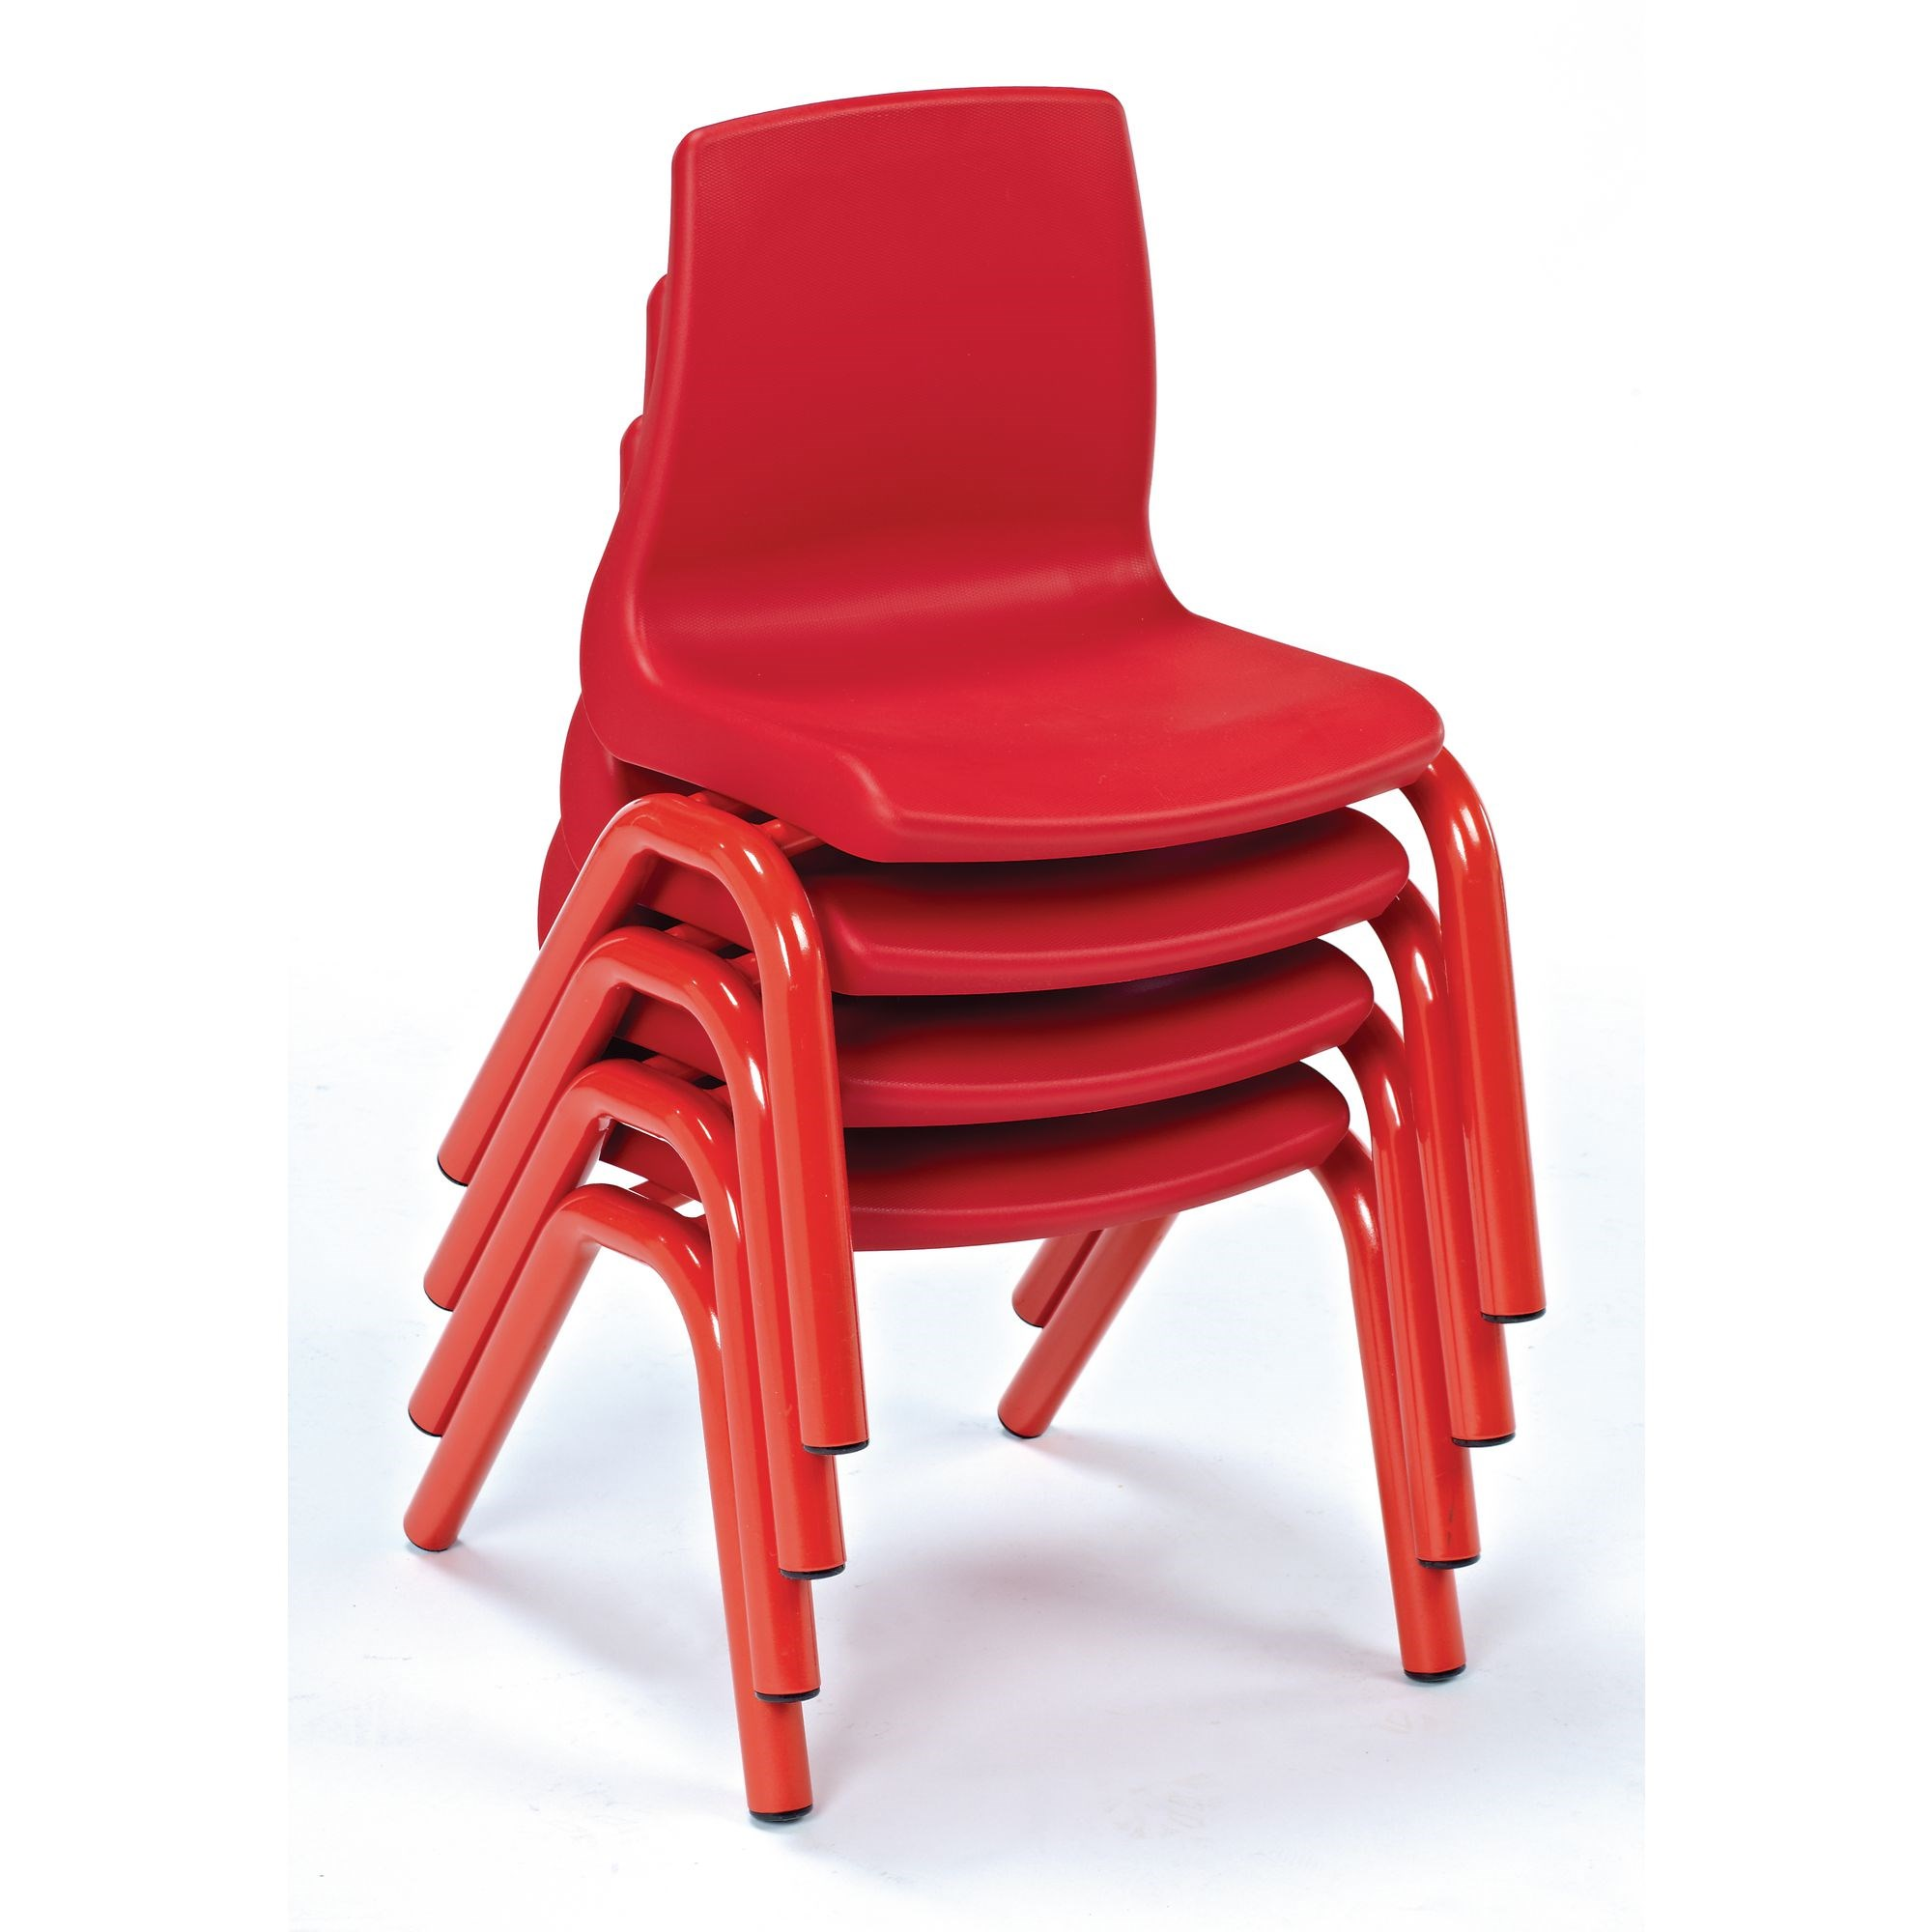 Harlequin Chairs Pre Sch Yel